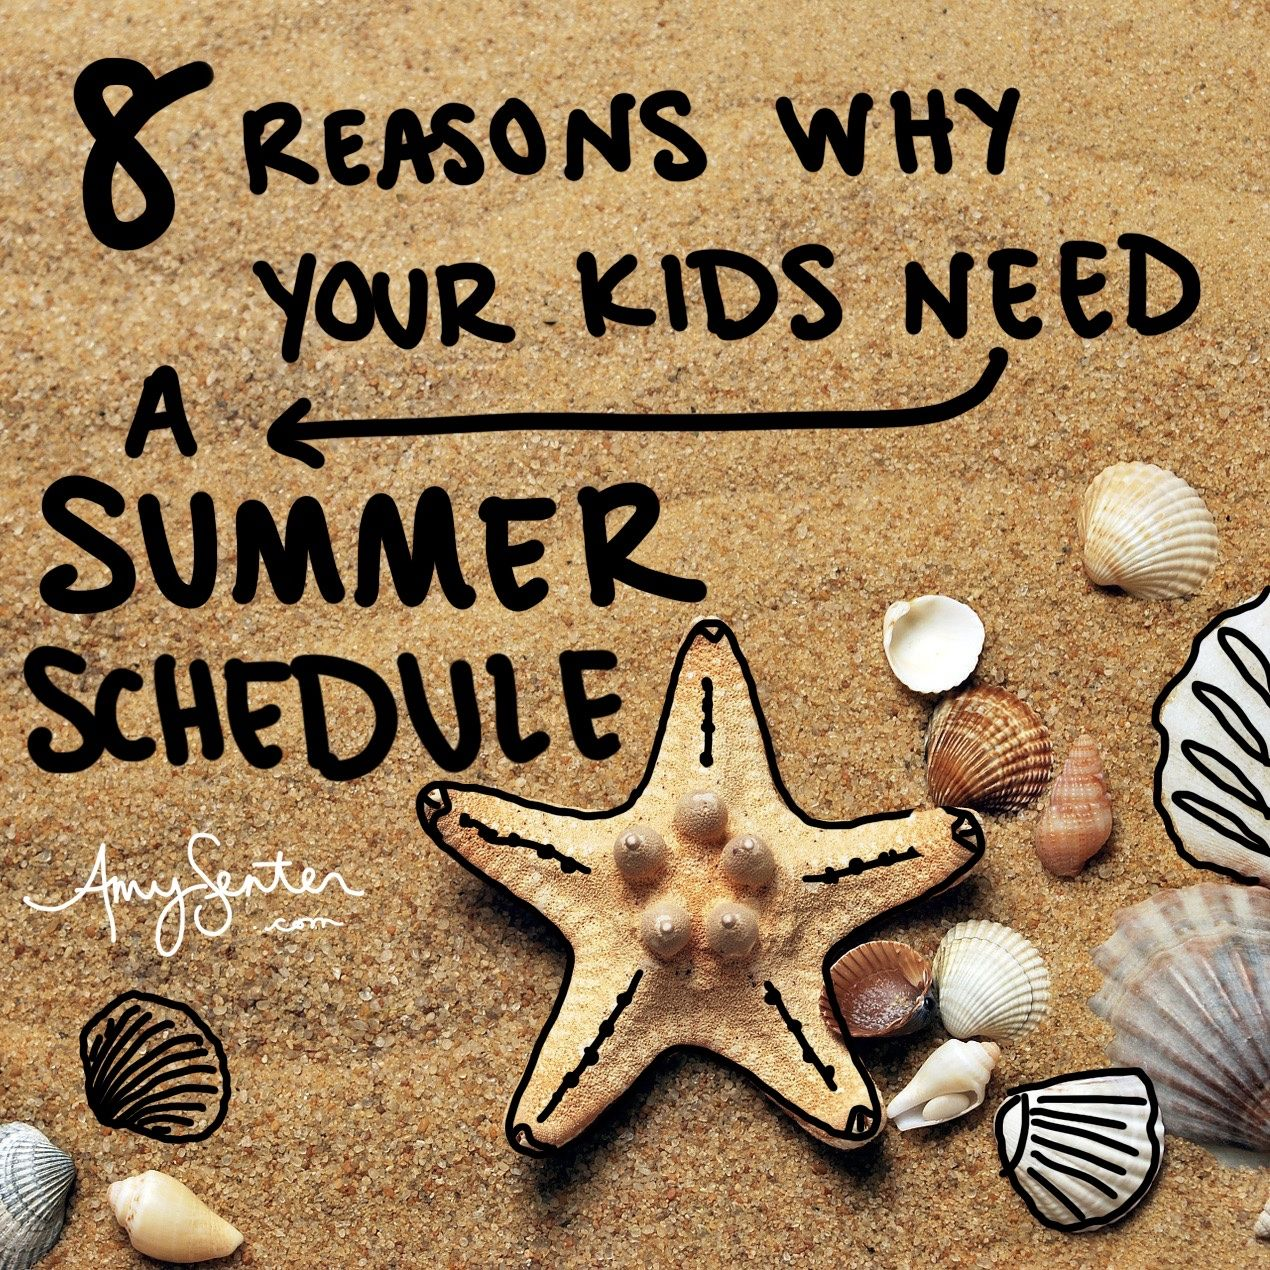 8 Reasons Why Your Kids Need A Summer Schedule